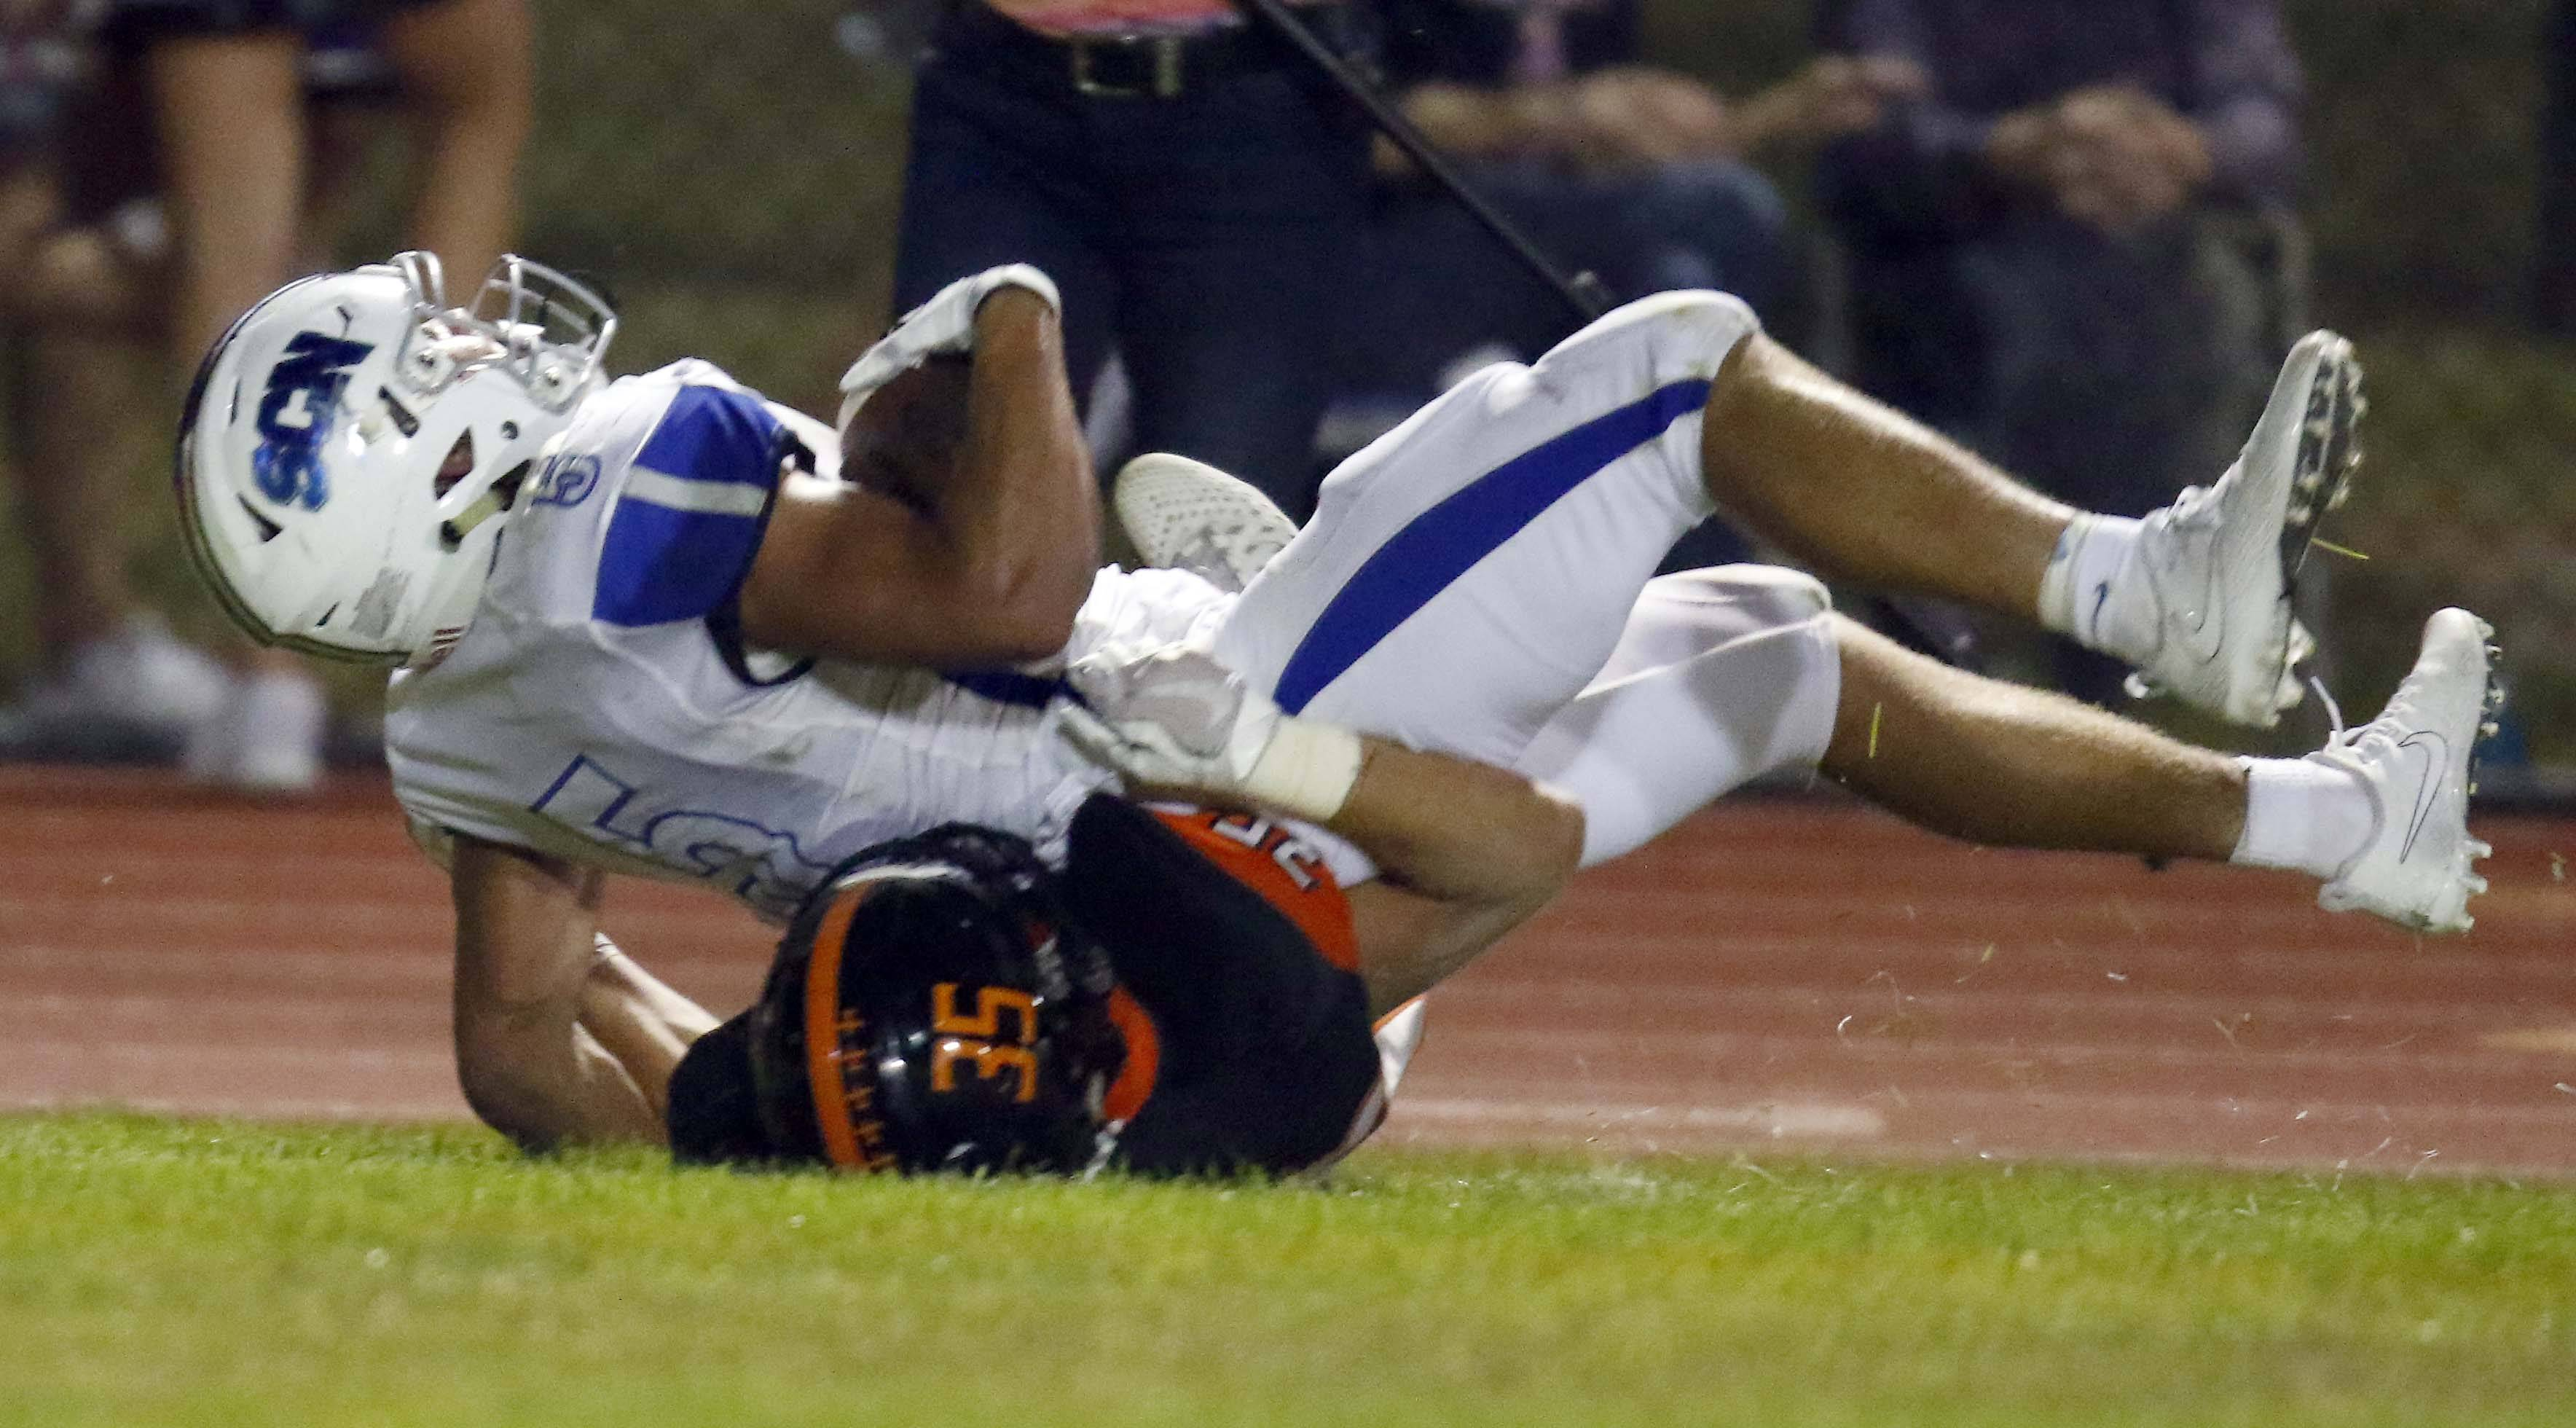 St. Charles North's Lucas Segobiano (5) rolls into the end zone over St. Charles East's Austin Klose (35) Friday during St. Charles North at St. Charles East football.